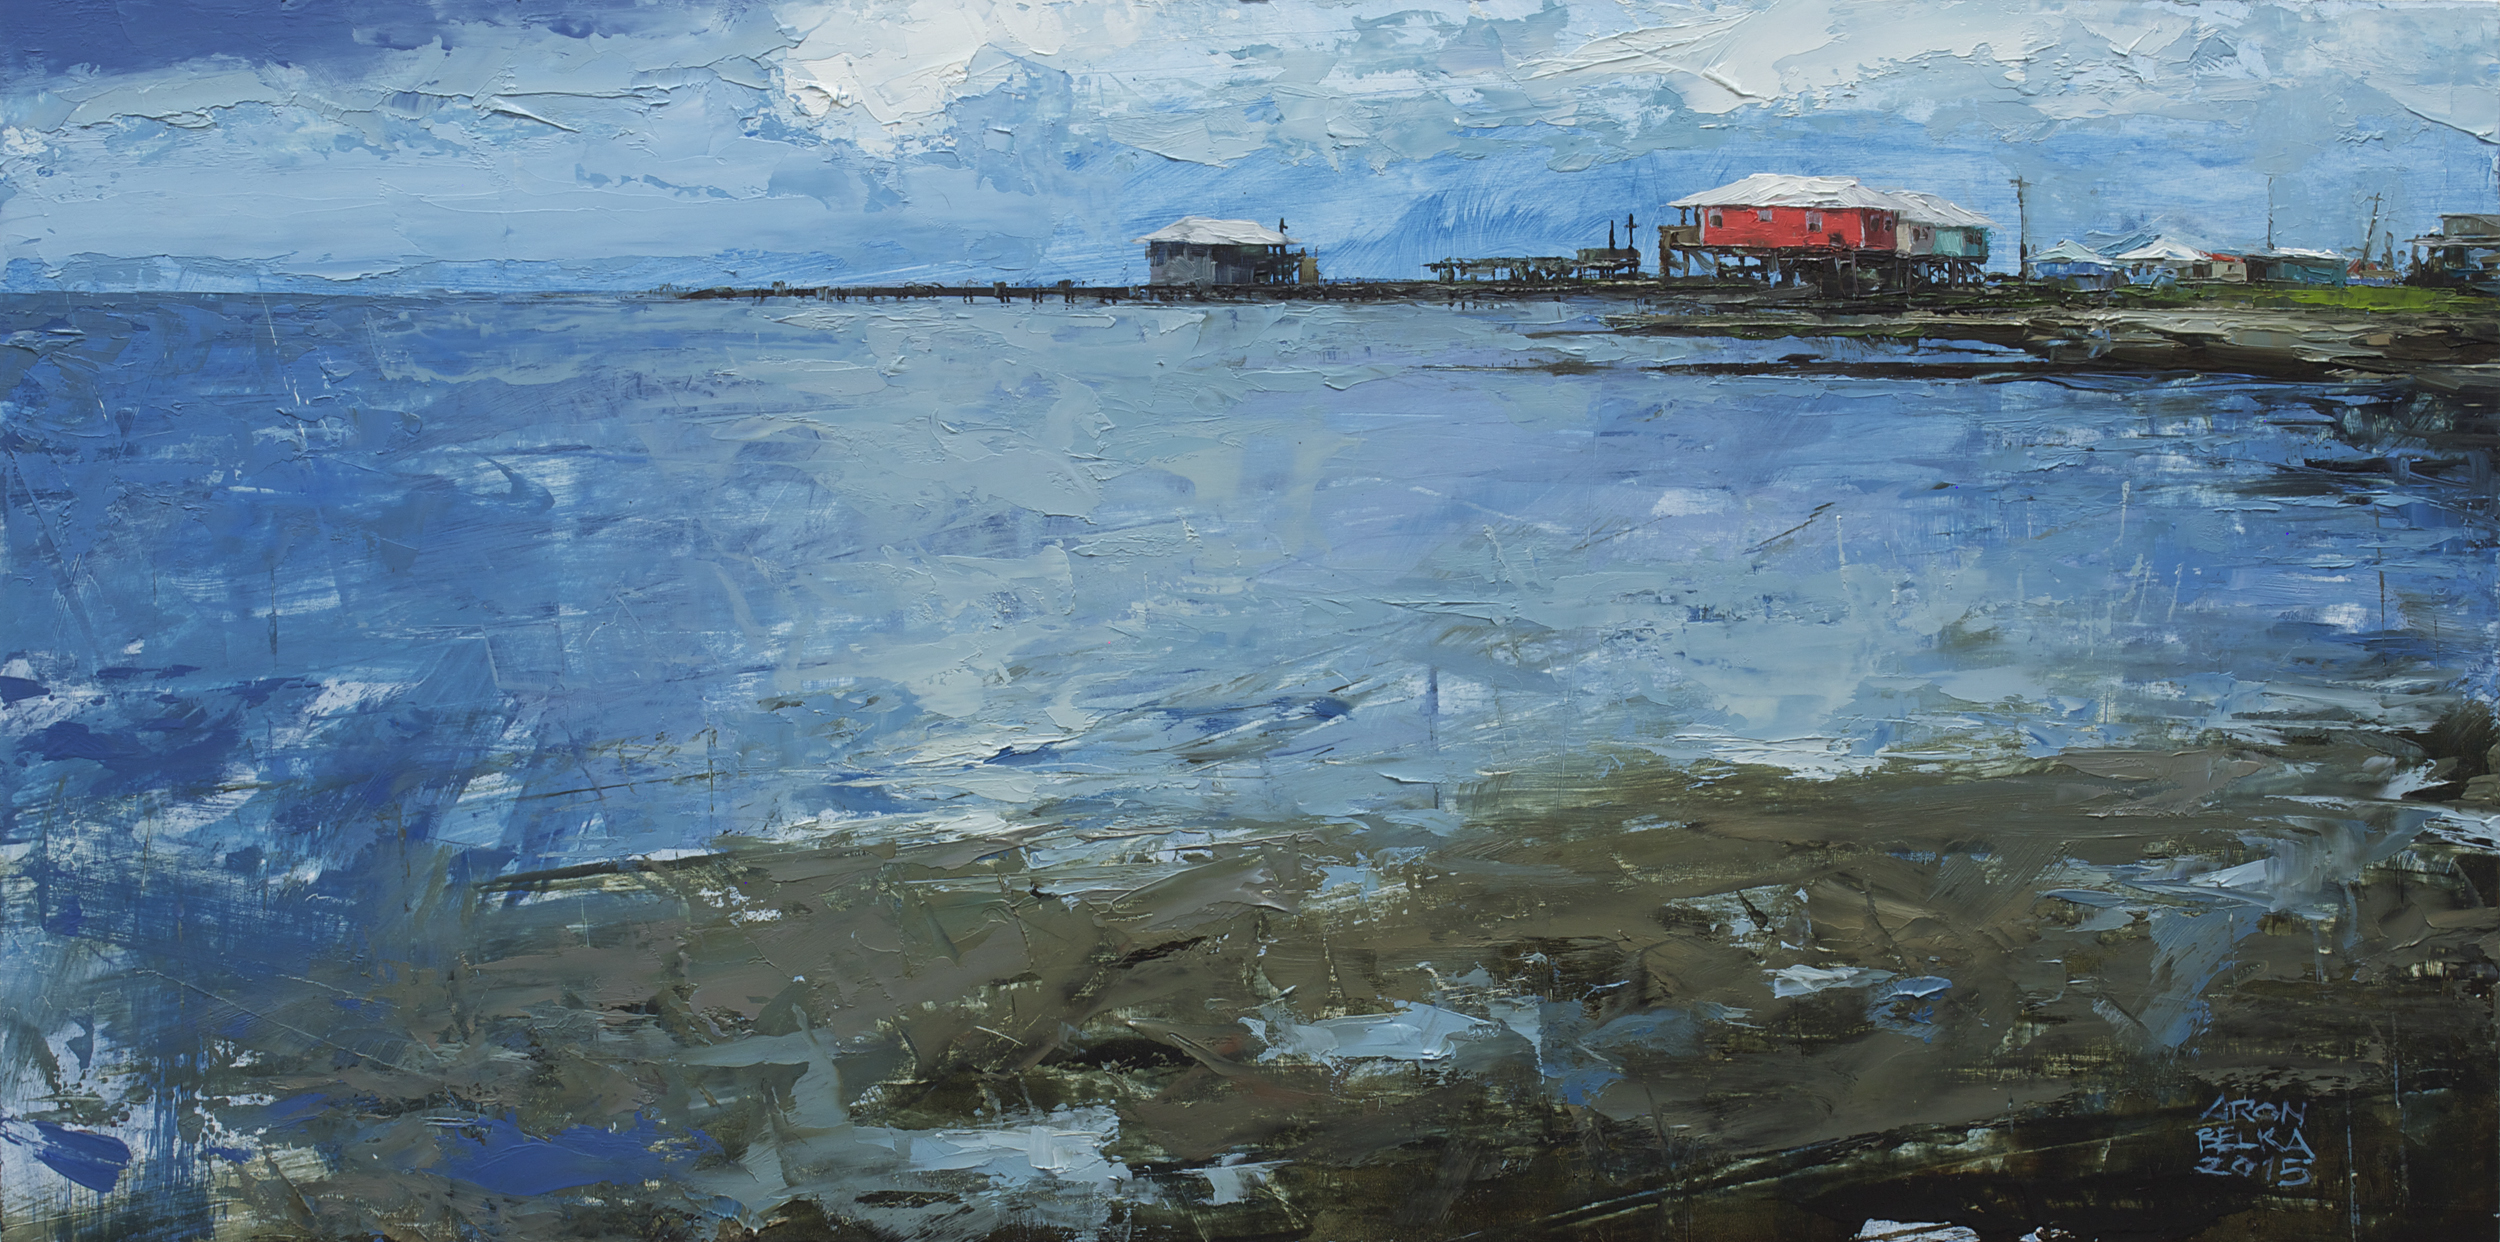 Grand Isle    2015 10 x 20 inches   oil on wood